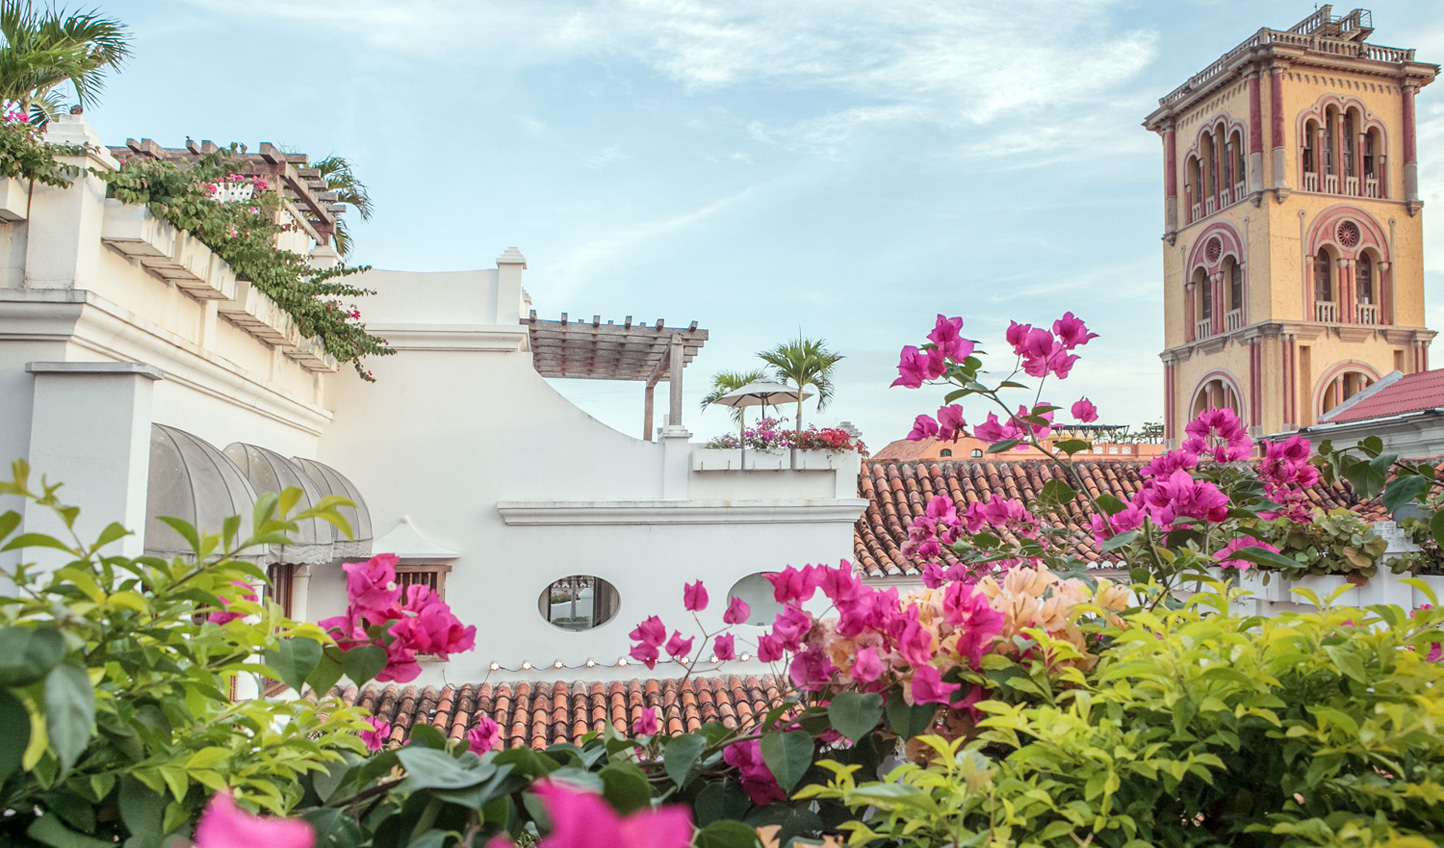 White washed Colonial buildings set against vibrant bougainvillea give Casa San Agustin irresistible charm